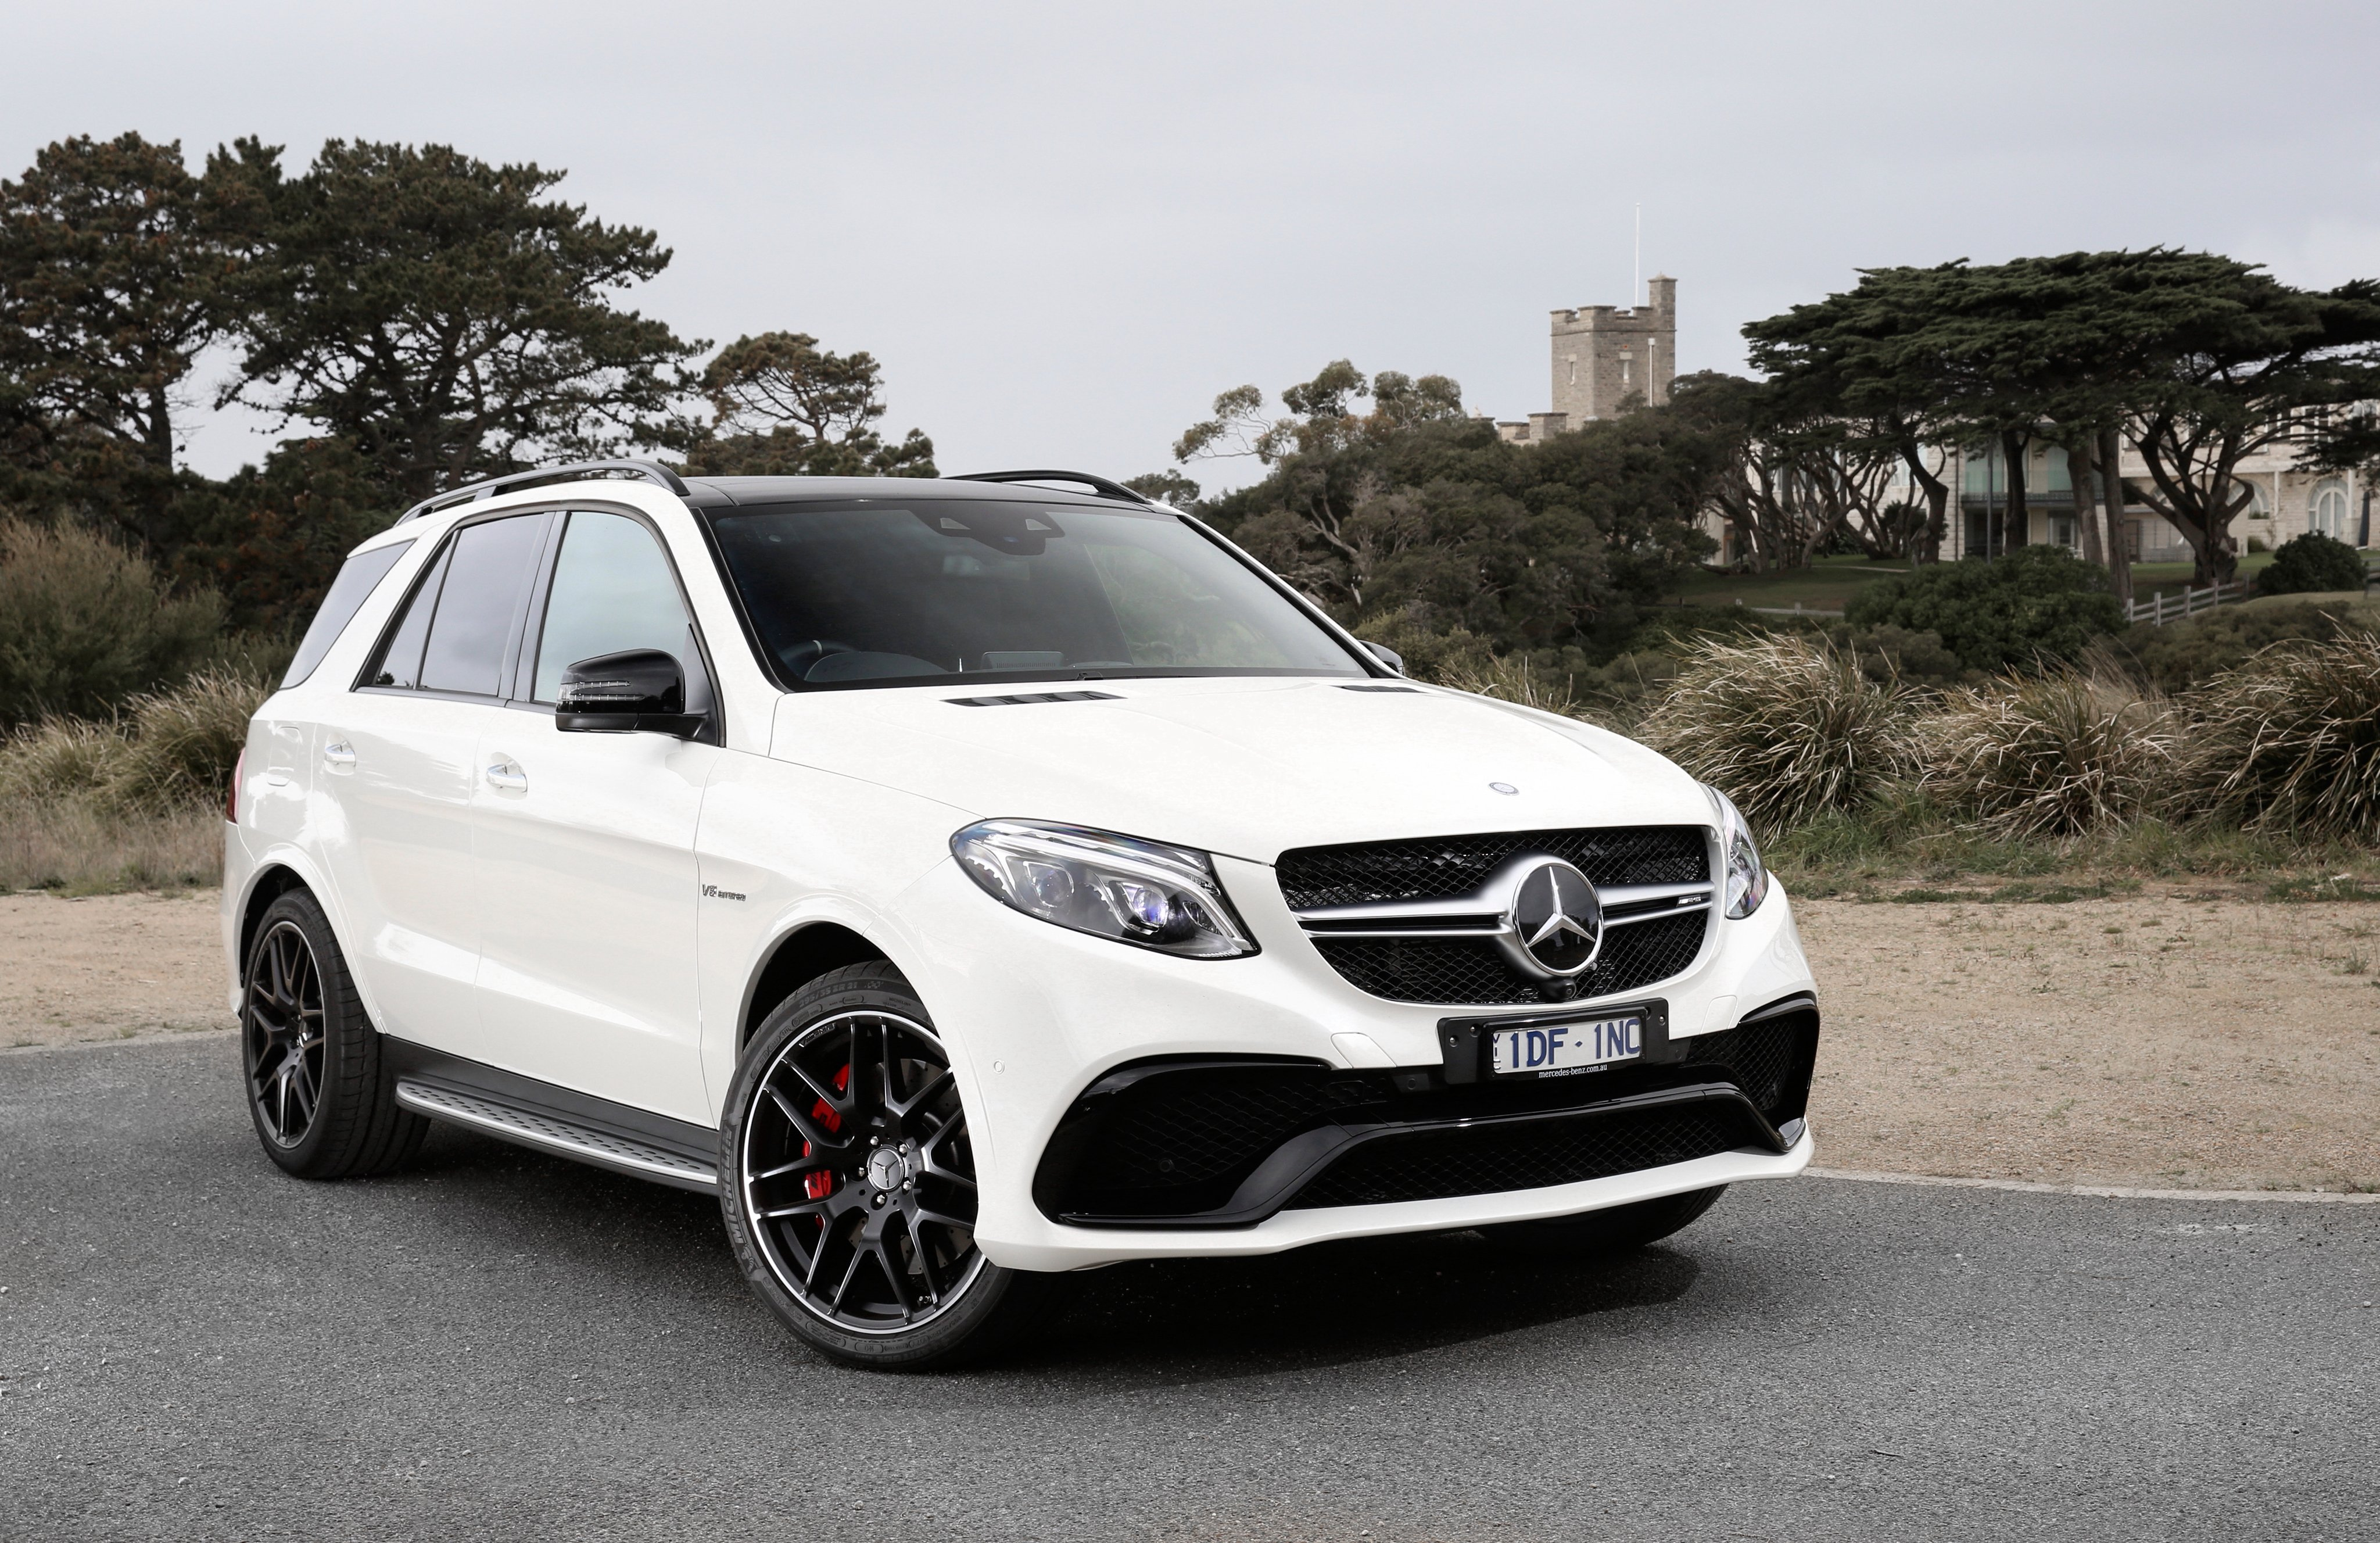 mercedes amg gle 63 s 4matic au spec w166 cars suv white. Black Bedroom Furniture Sets. Home Design Ideas